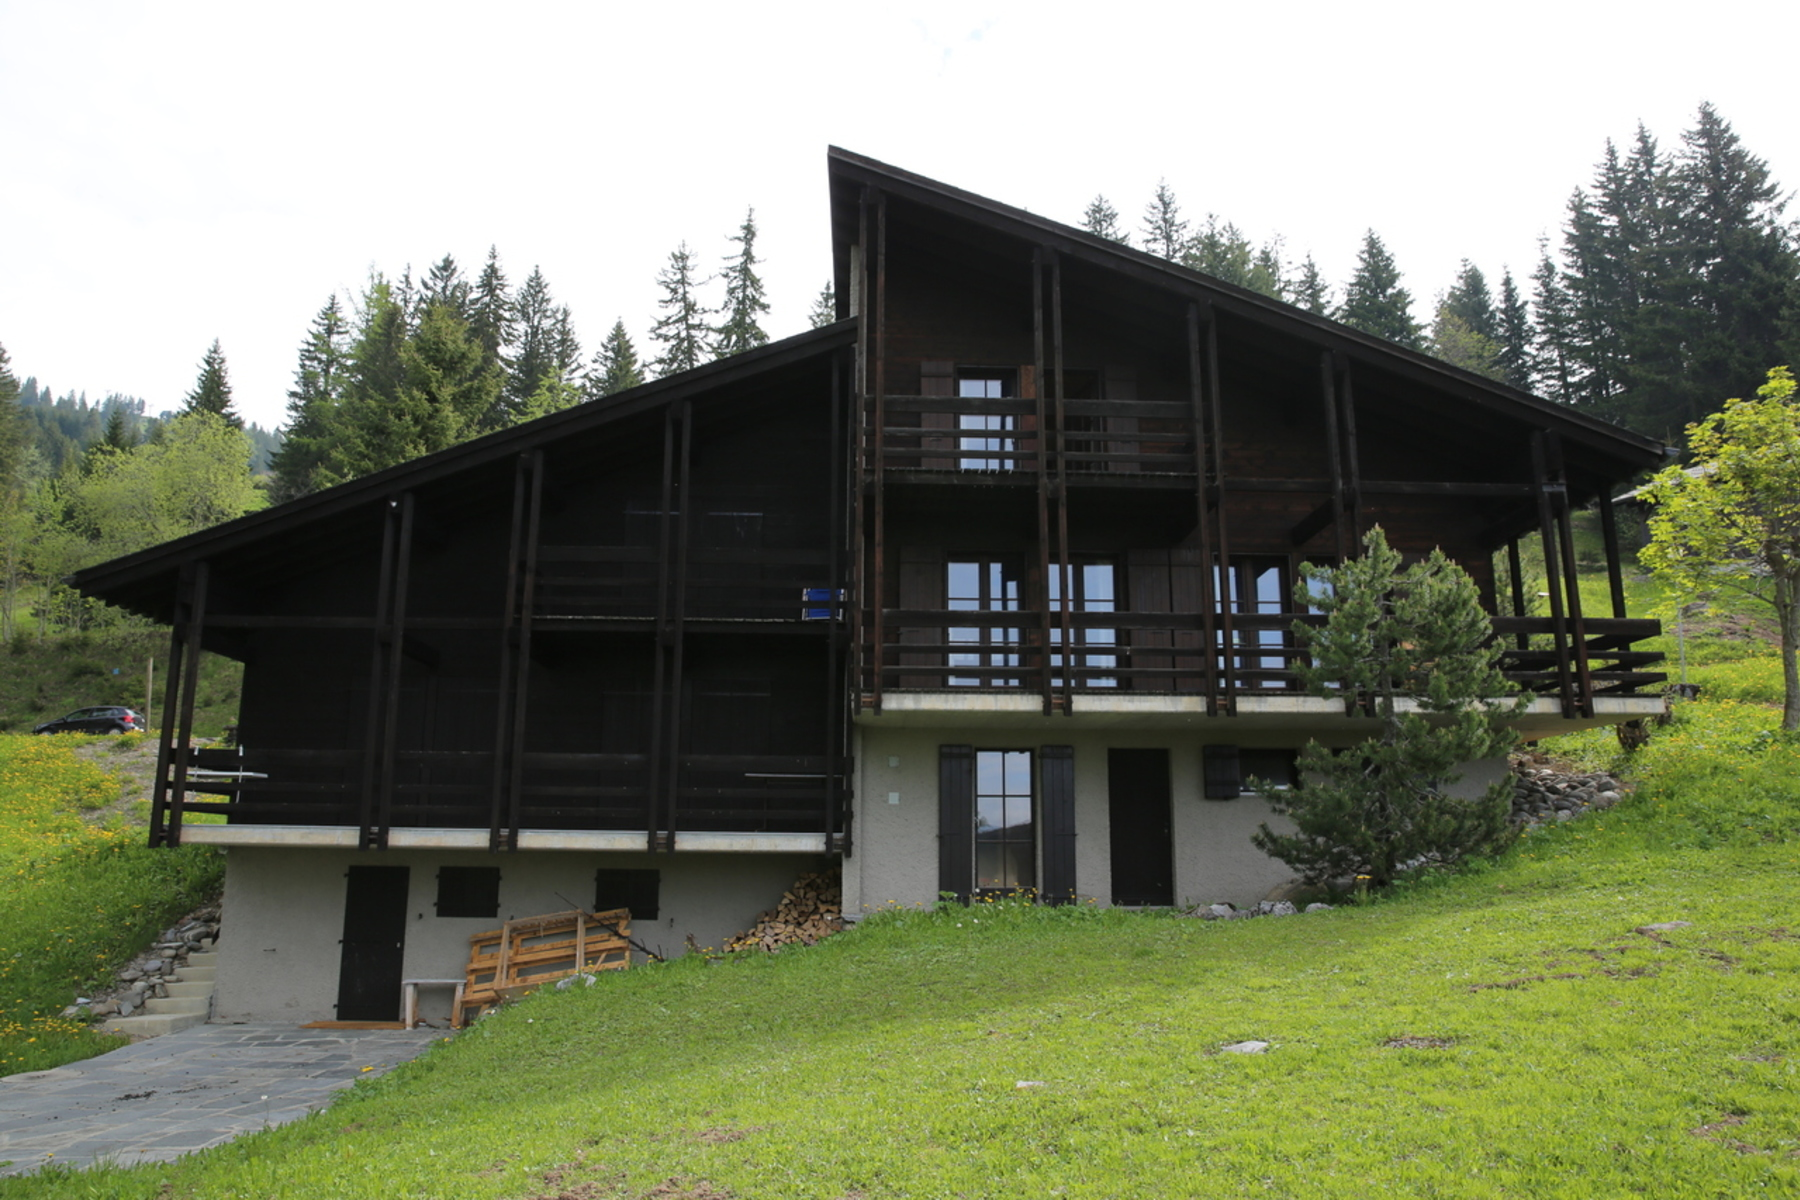 Single Family Home for Sale at Chalet C22 Route de l'Alpe des Chaux Gryon, Vaud, 1882 Switzerland